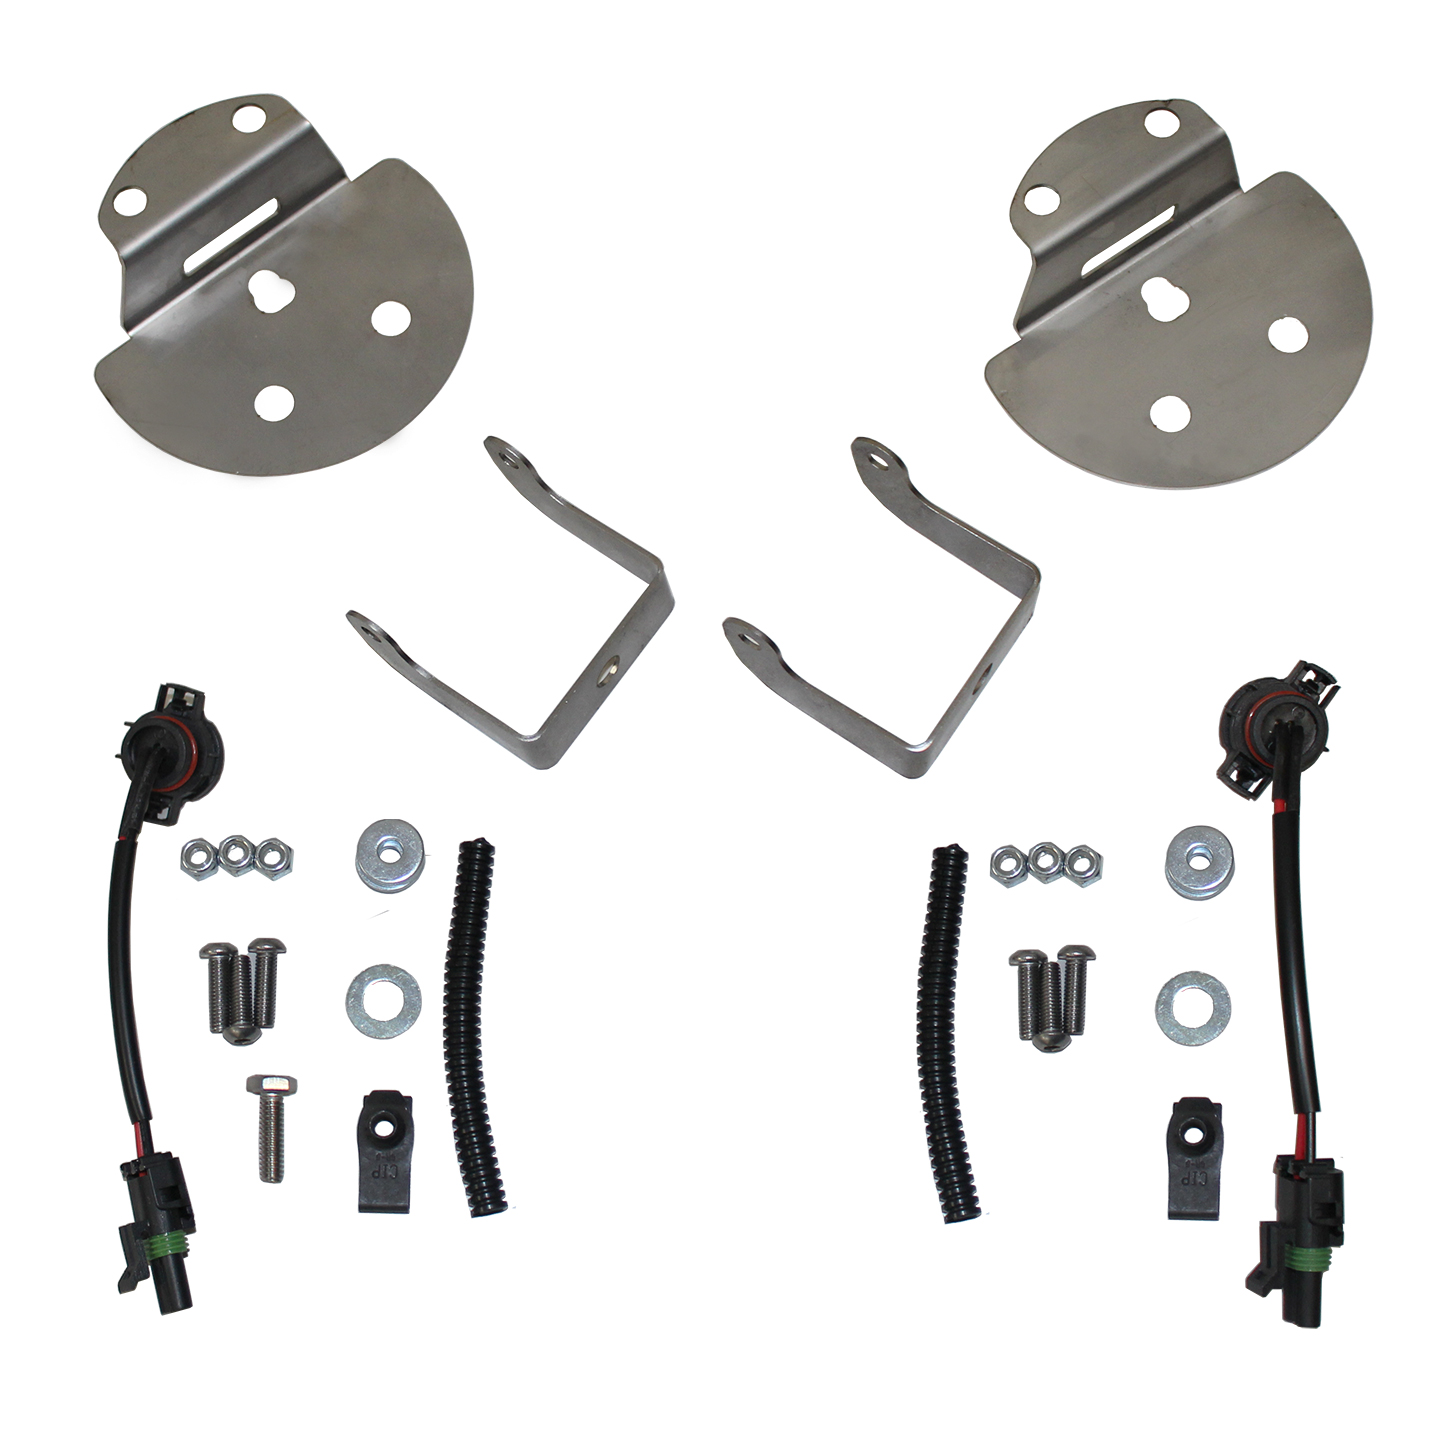 Colorado/Canyon Fog Pocket Mounting Kit 15-16 Canyon/Colorado Baja Designs